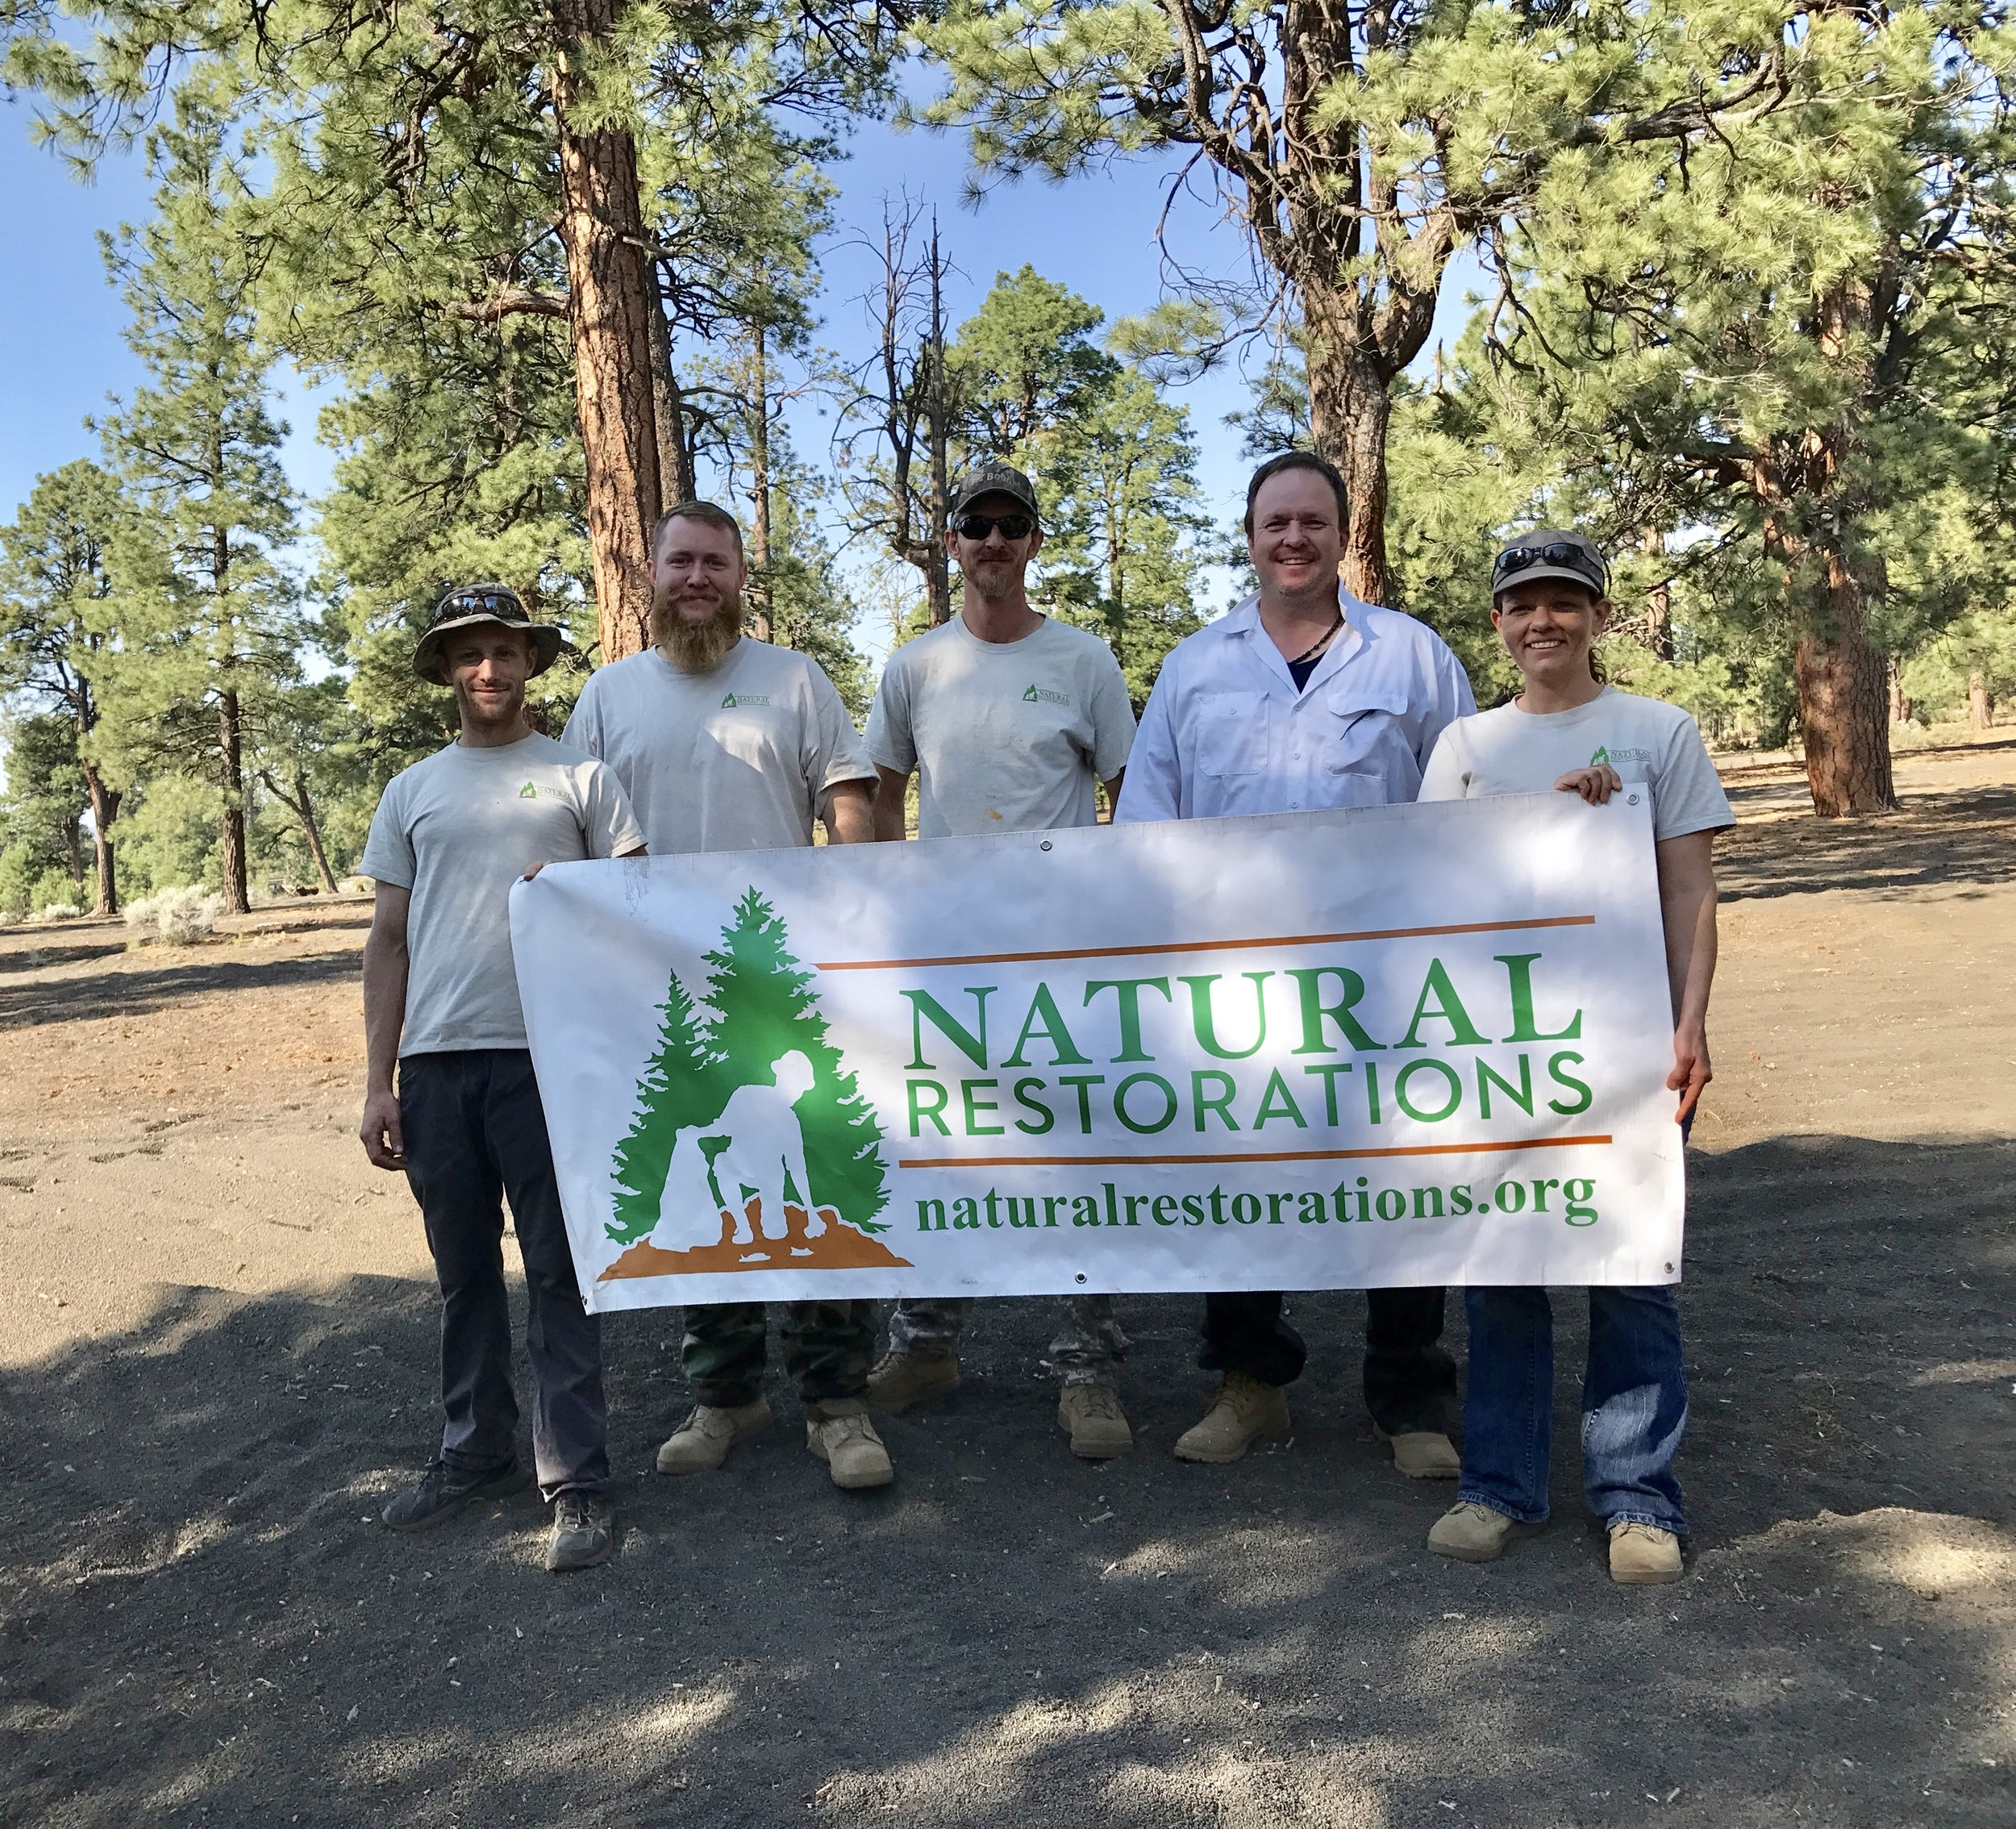 June 2017 Cinder Hills OHV Area Cleanup Project - Our Dedicated Restoration Team removed 2,300 pounds of trash from the Cinder Hills OHV Area in Flagstaff, Arizona, including thousands of nails from pallet fires illegally burned on roads and trails, OHV & 4X4 parts, clothing, camping trash, broken glass, plastic bags & wrappers, a broken tent full of trash, plastic bottles, glass bottles, aluminum cans, and lots of scattered trash. Check out these pictures from our project: